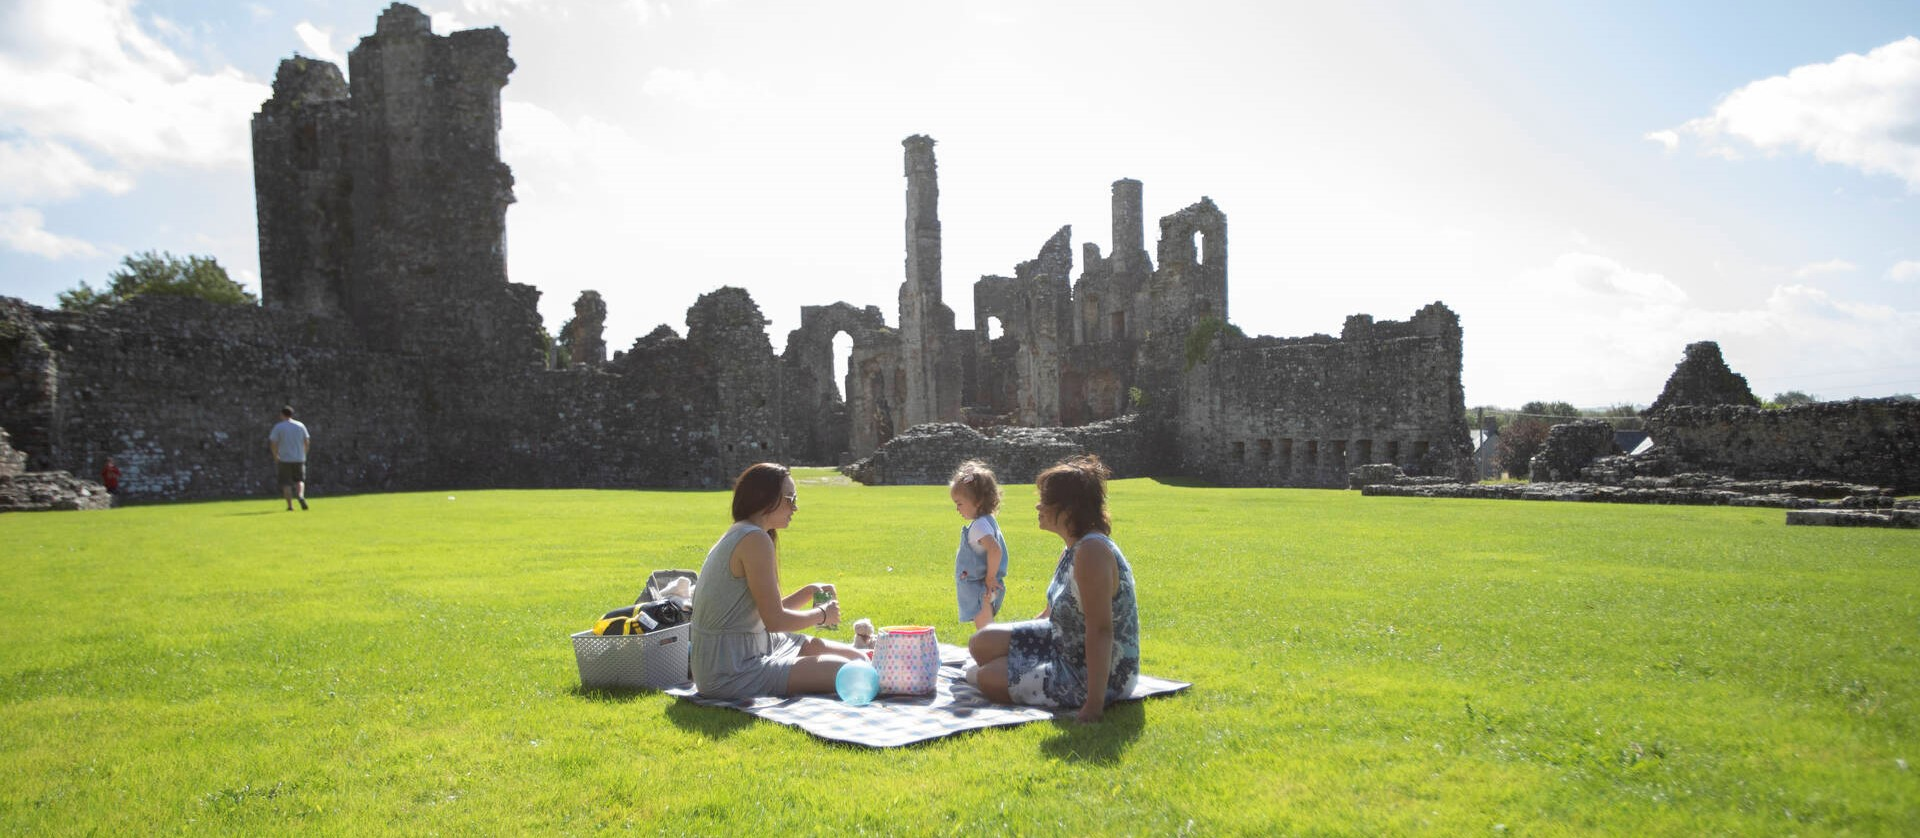 Picnic at Coity Castle